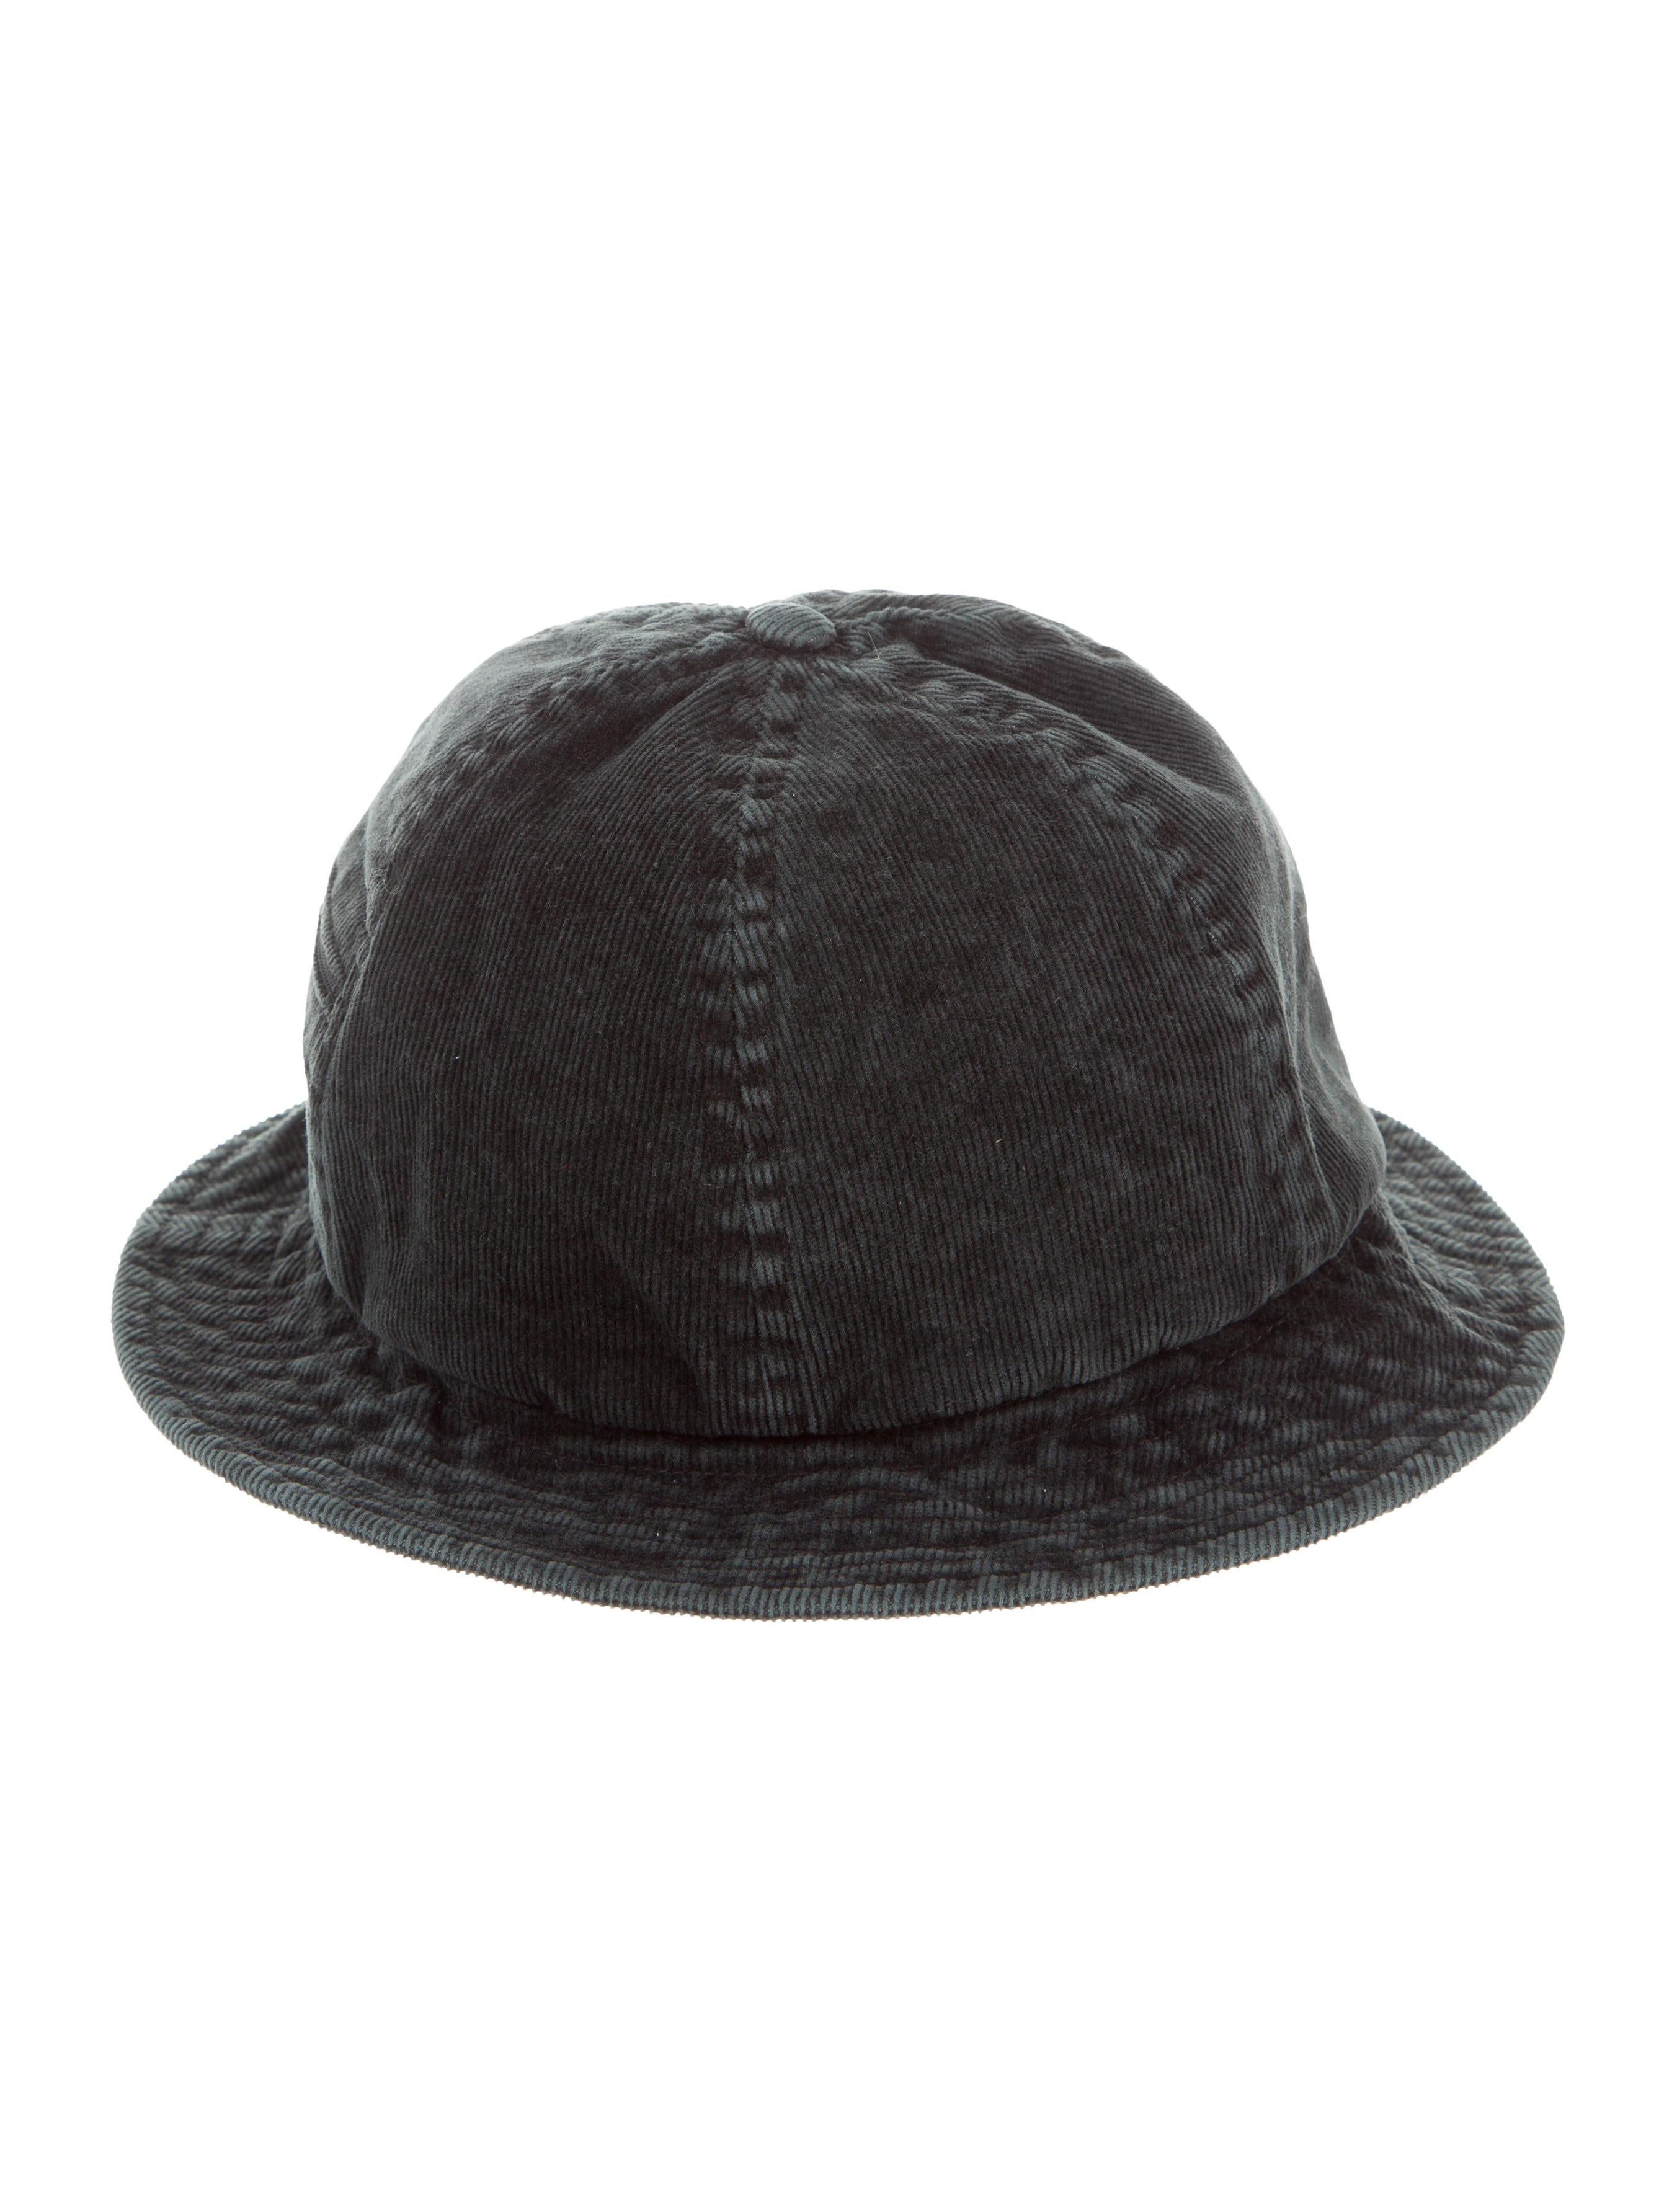 Supreme Corduroy Bucket Hat - Accessories - WSPME20243  a5d7bd4a7ed